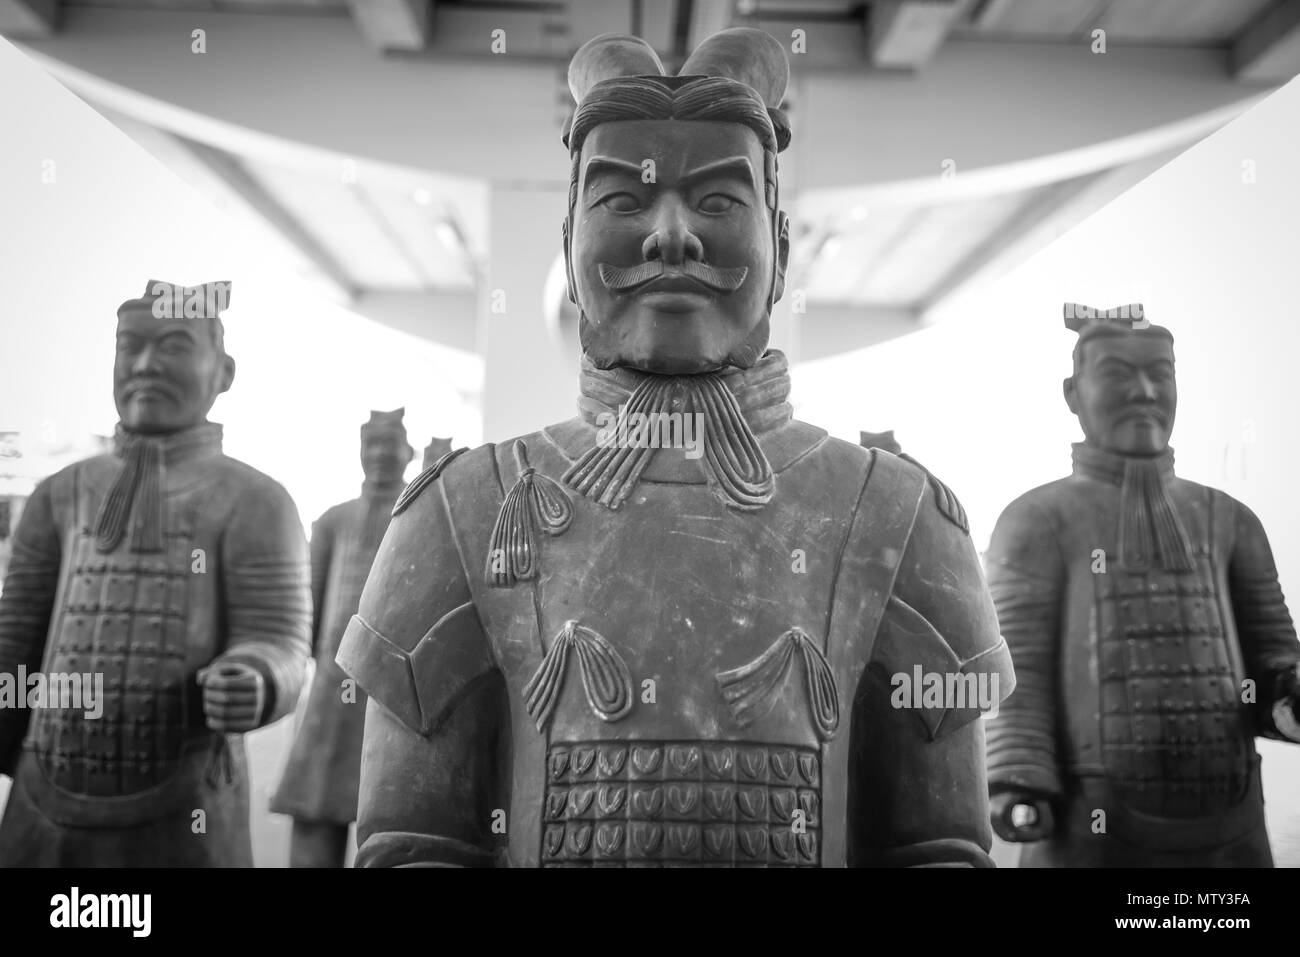 Group of Chinese terracotta soldiers. Reproduction of the famous statues of Xian, China - Stock Image